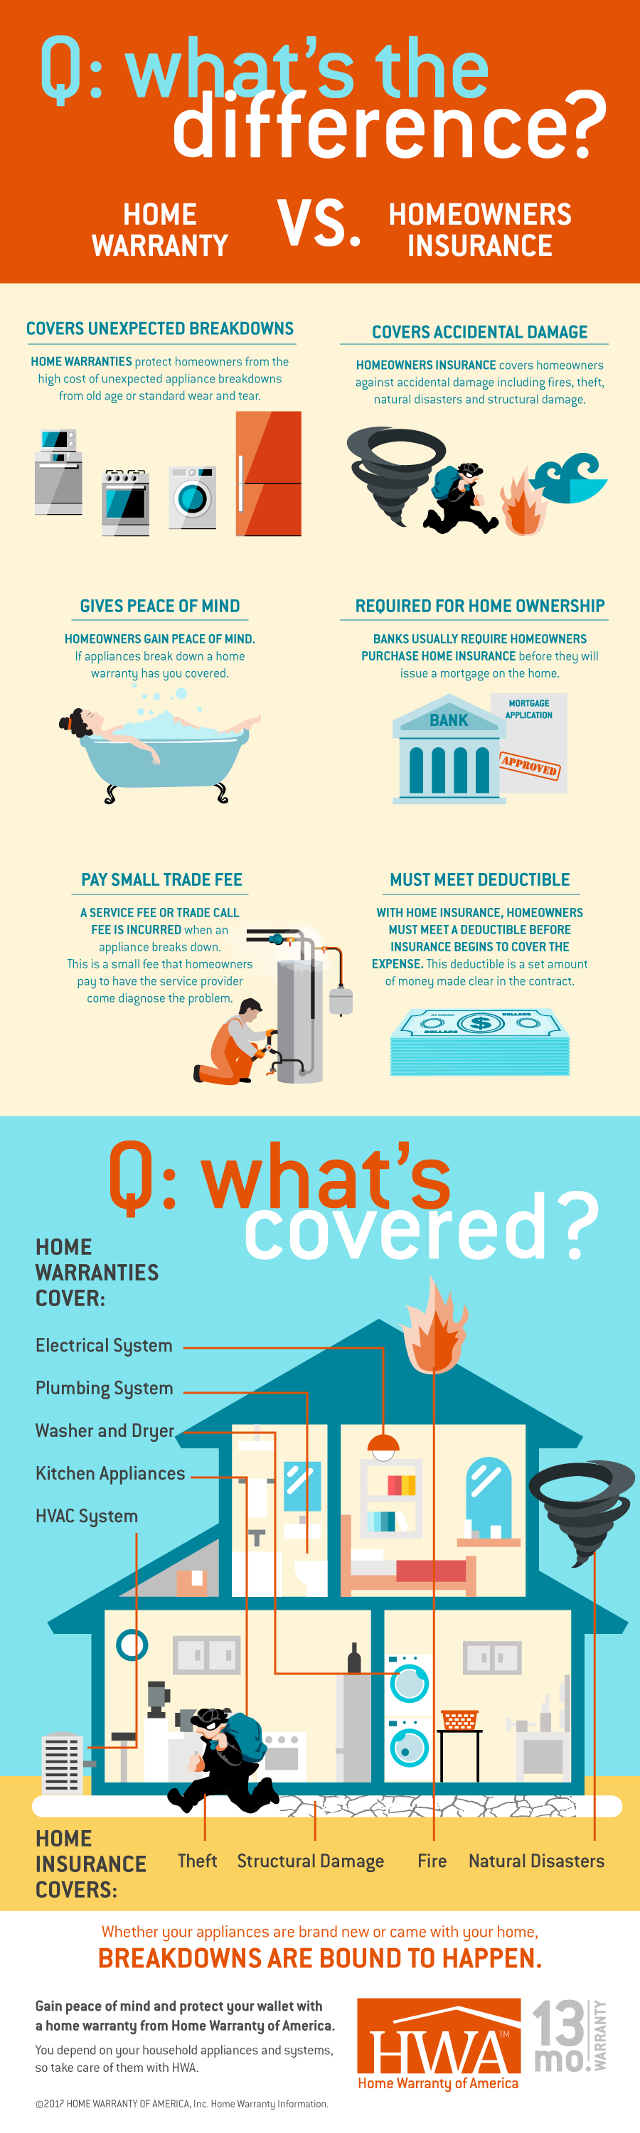 Difference Between Homeowner Insurance and Home Warranty